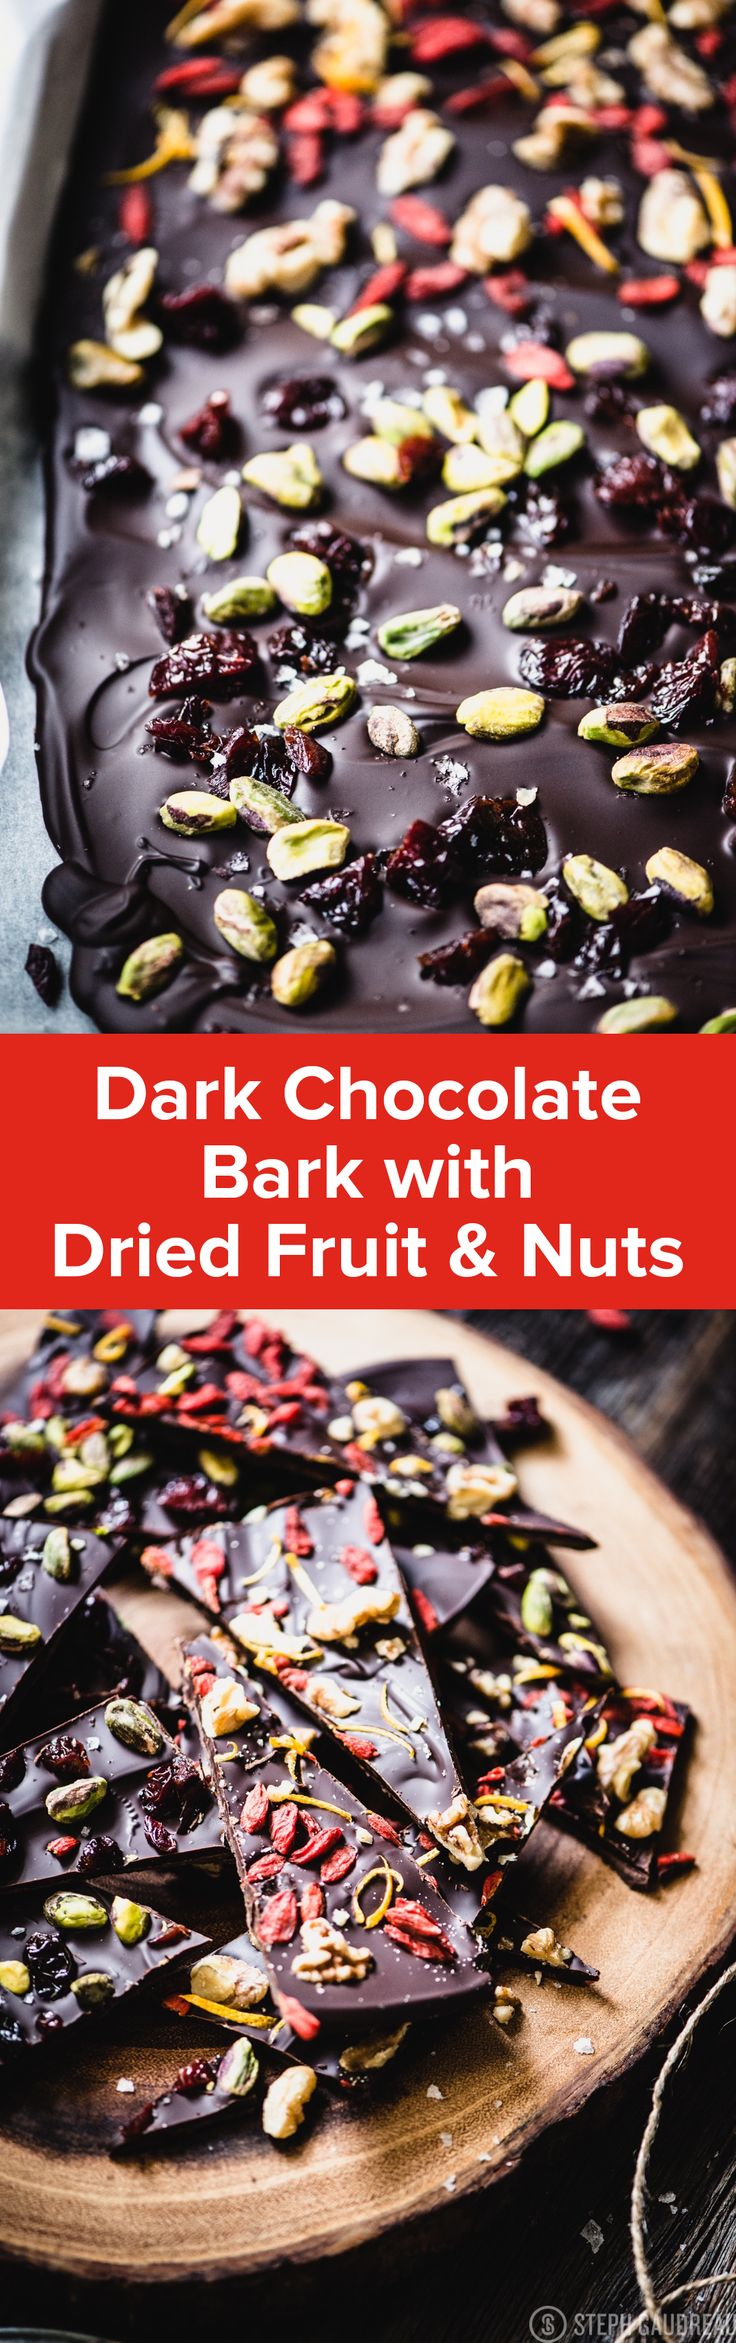 Dark Chocolate Bark Recipe | StupidEasyPaleo.com